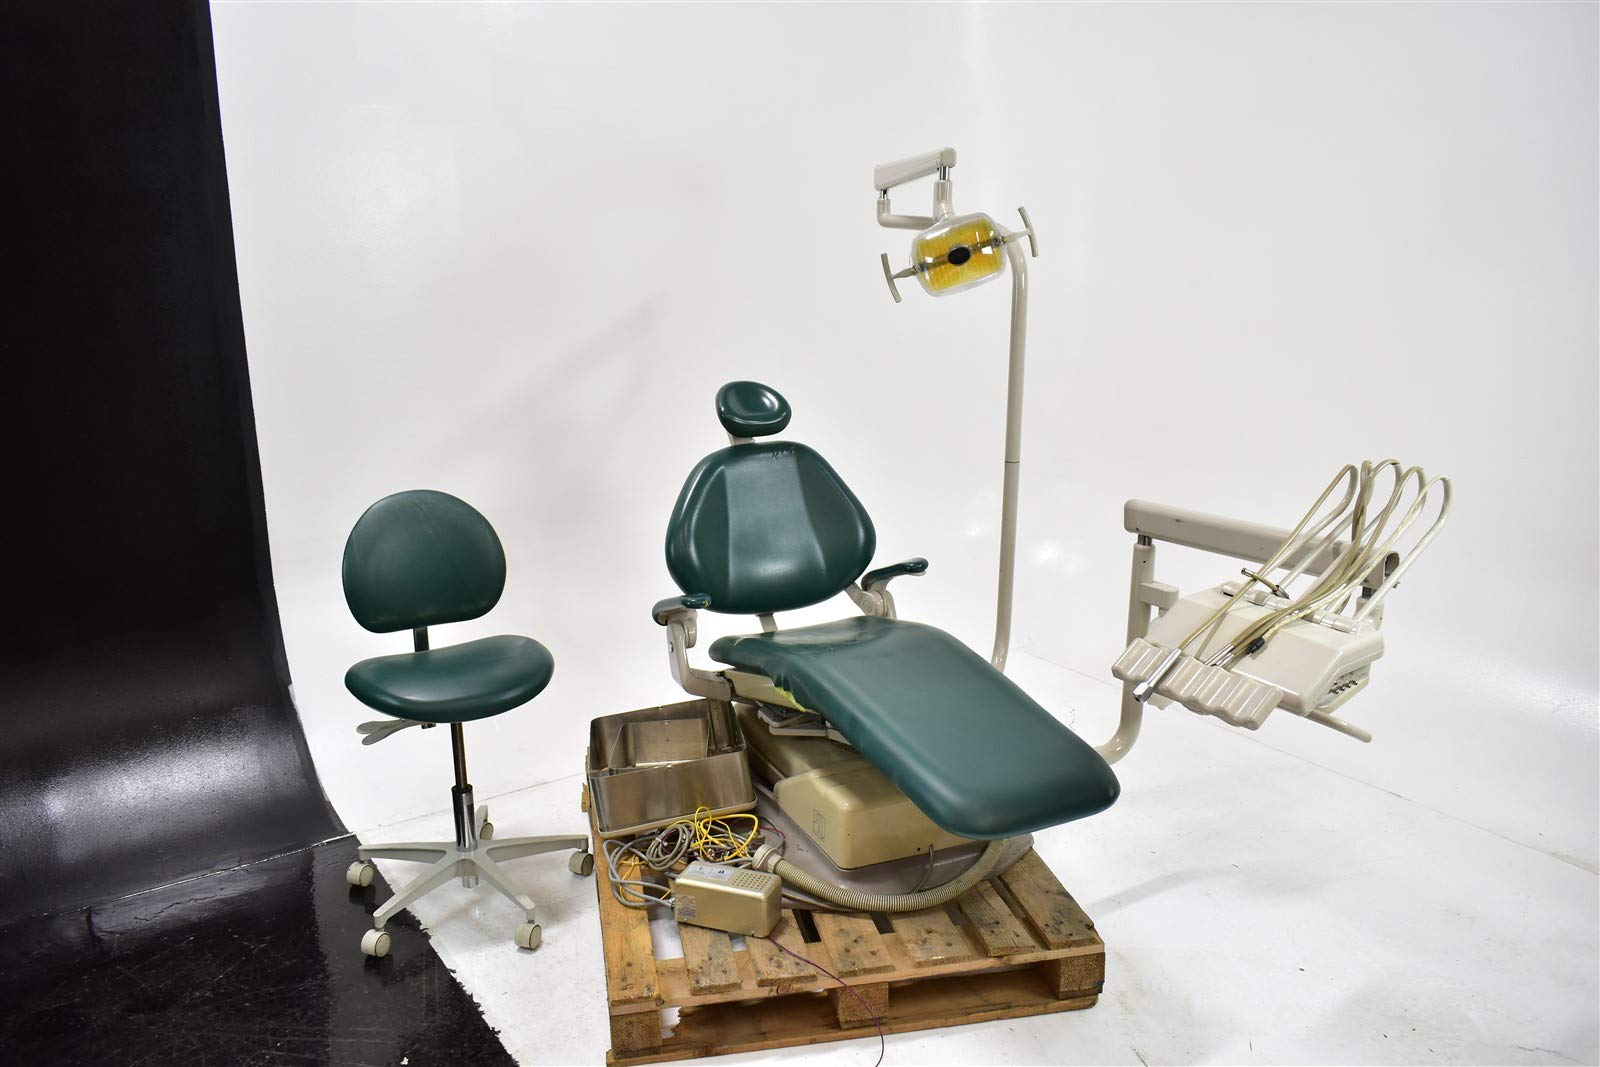 Surprising Adec Dental Chair Best Chairs Reviews Ratings Pricing Squirreltailoven Fun Painted Chair Ideas Images Squirreltailovenorg